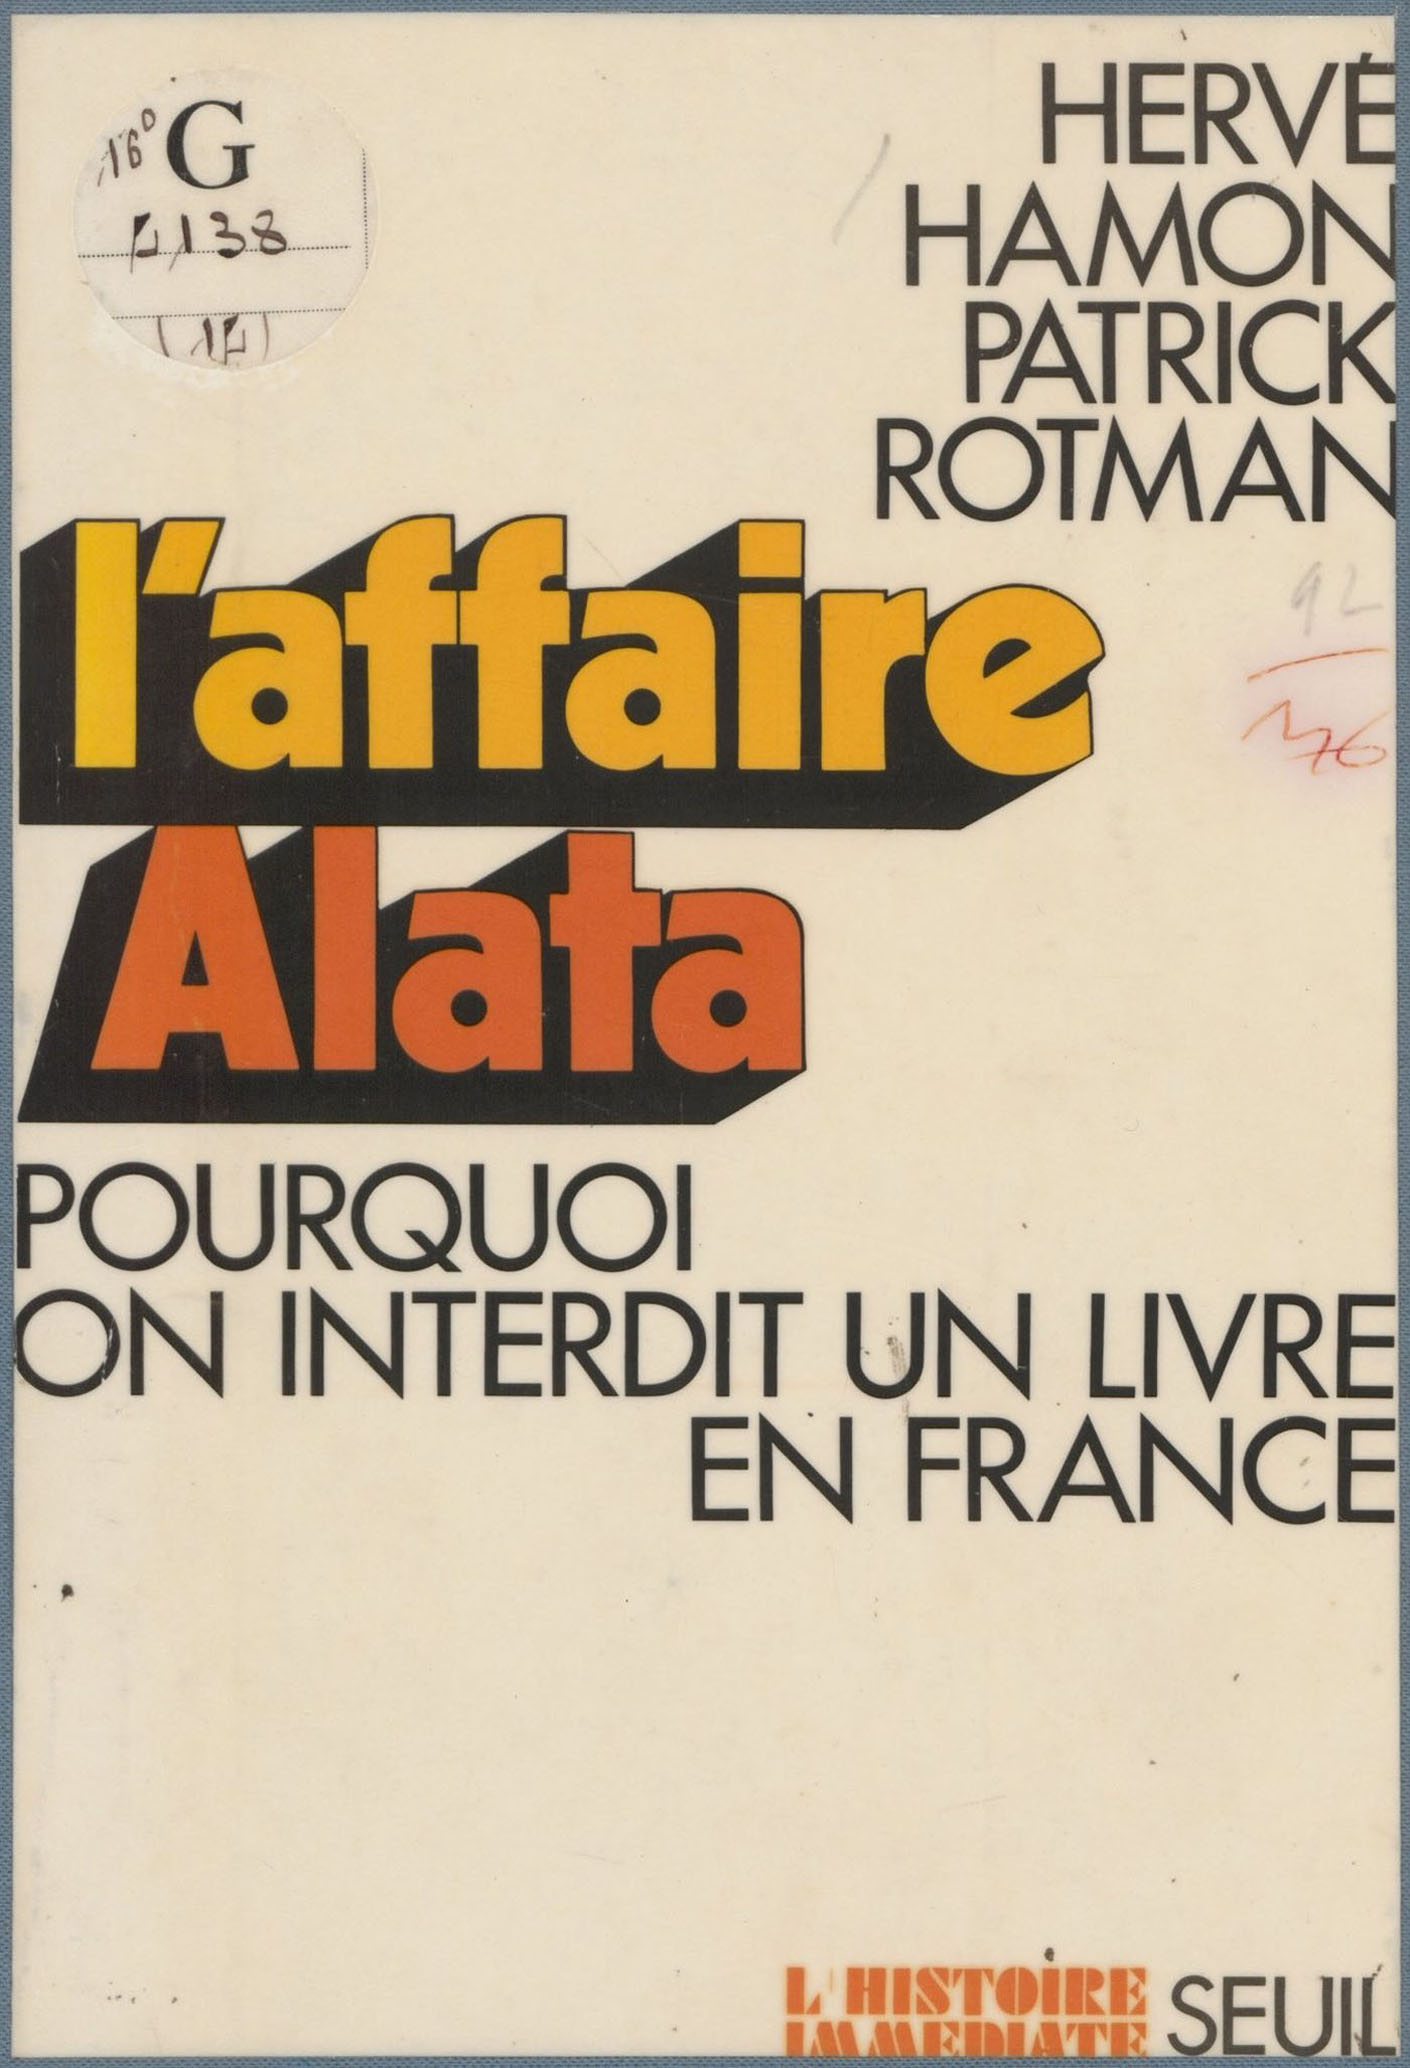 L'Affaire Alata, Patrick Rotman